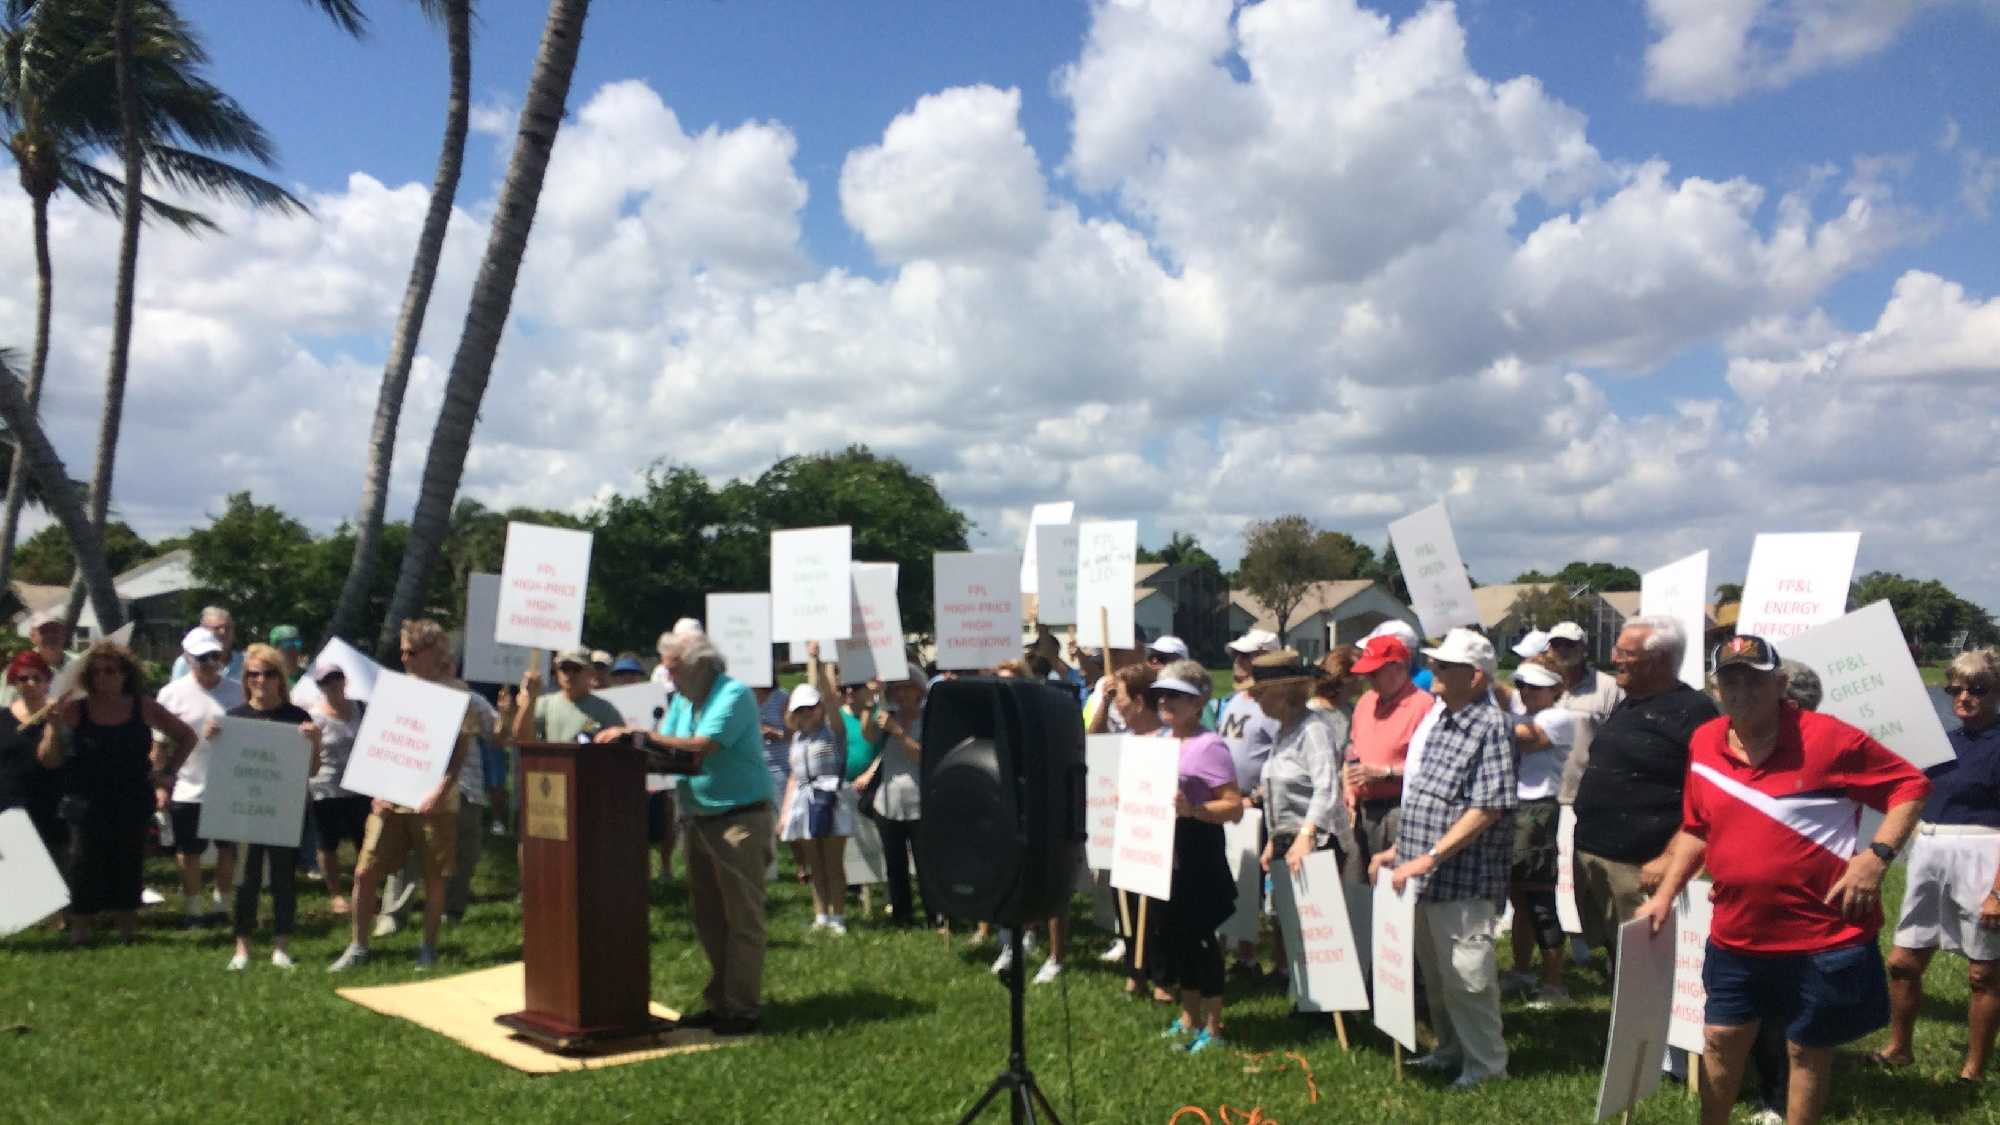 On the eve of Earth Day, about 250 homeowners gathered outside the Valencia Lakes neighborhood in Boynton Beach in an effort to challenge Florida Power and Light to switch its streets lights to energy efficient ones.